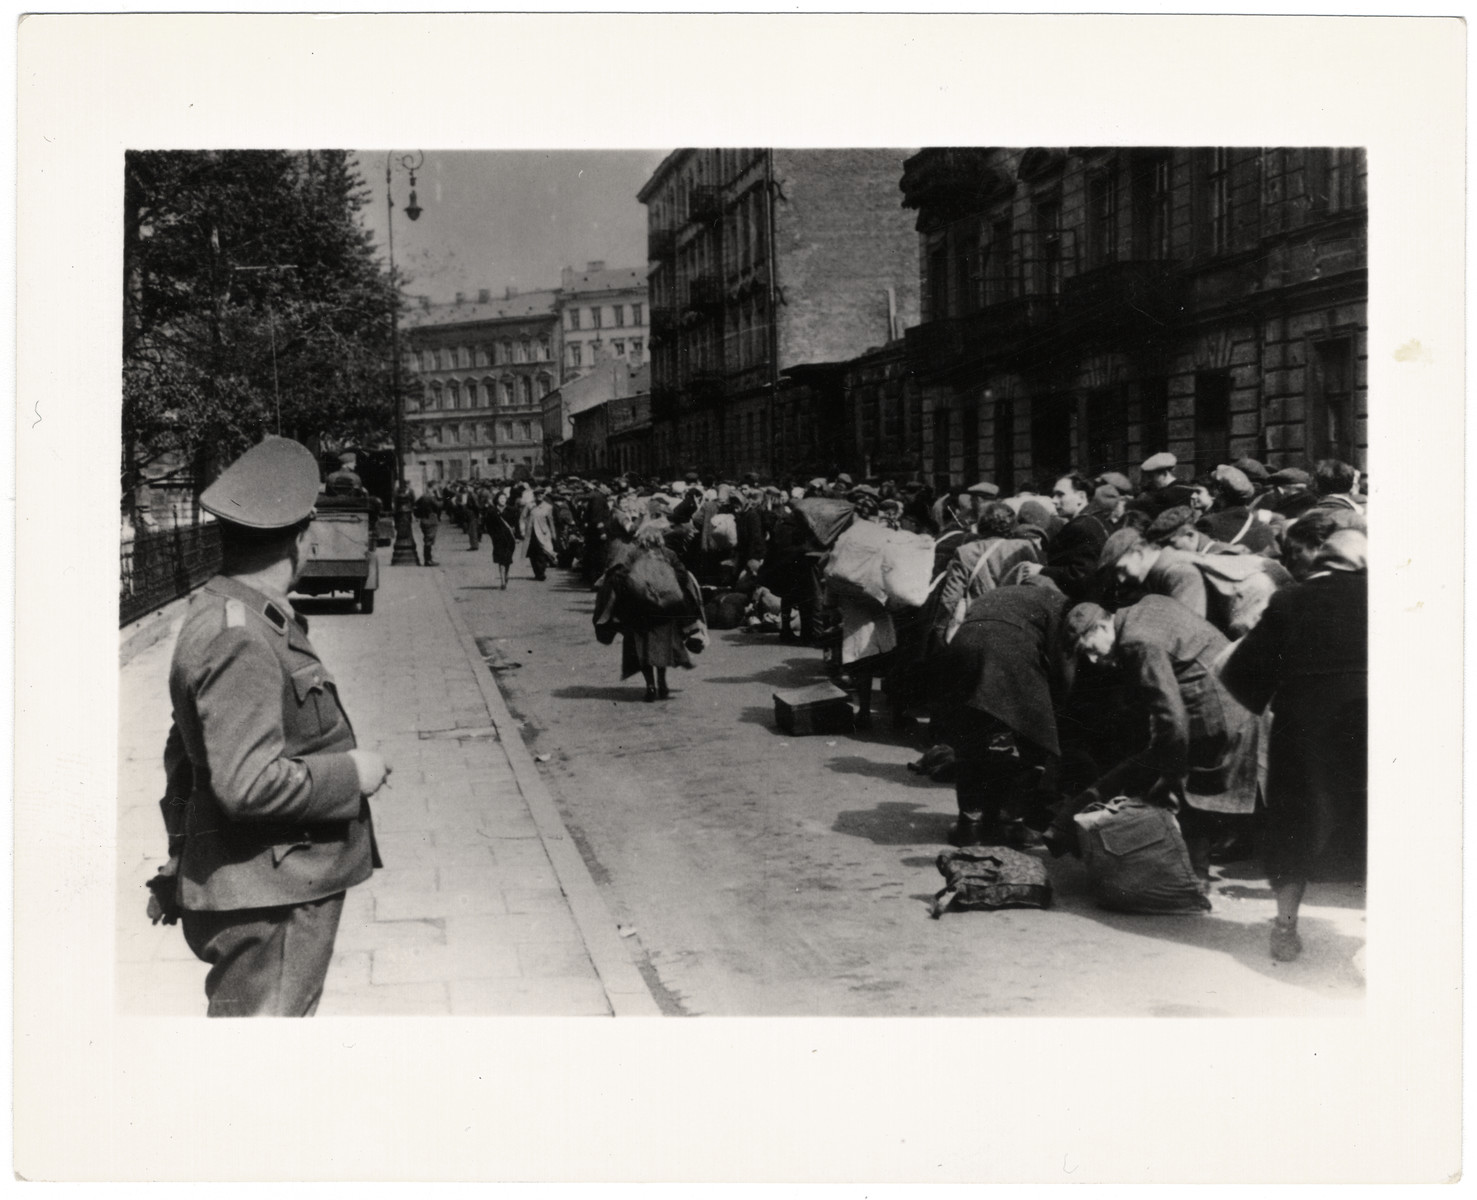 A SS solider oversees the deportation of survivors of the Warsaw ghetto uprising.